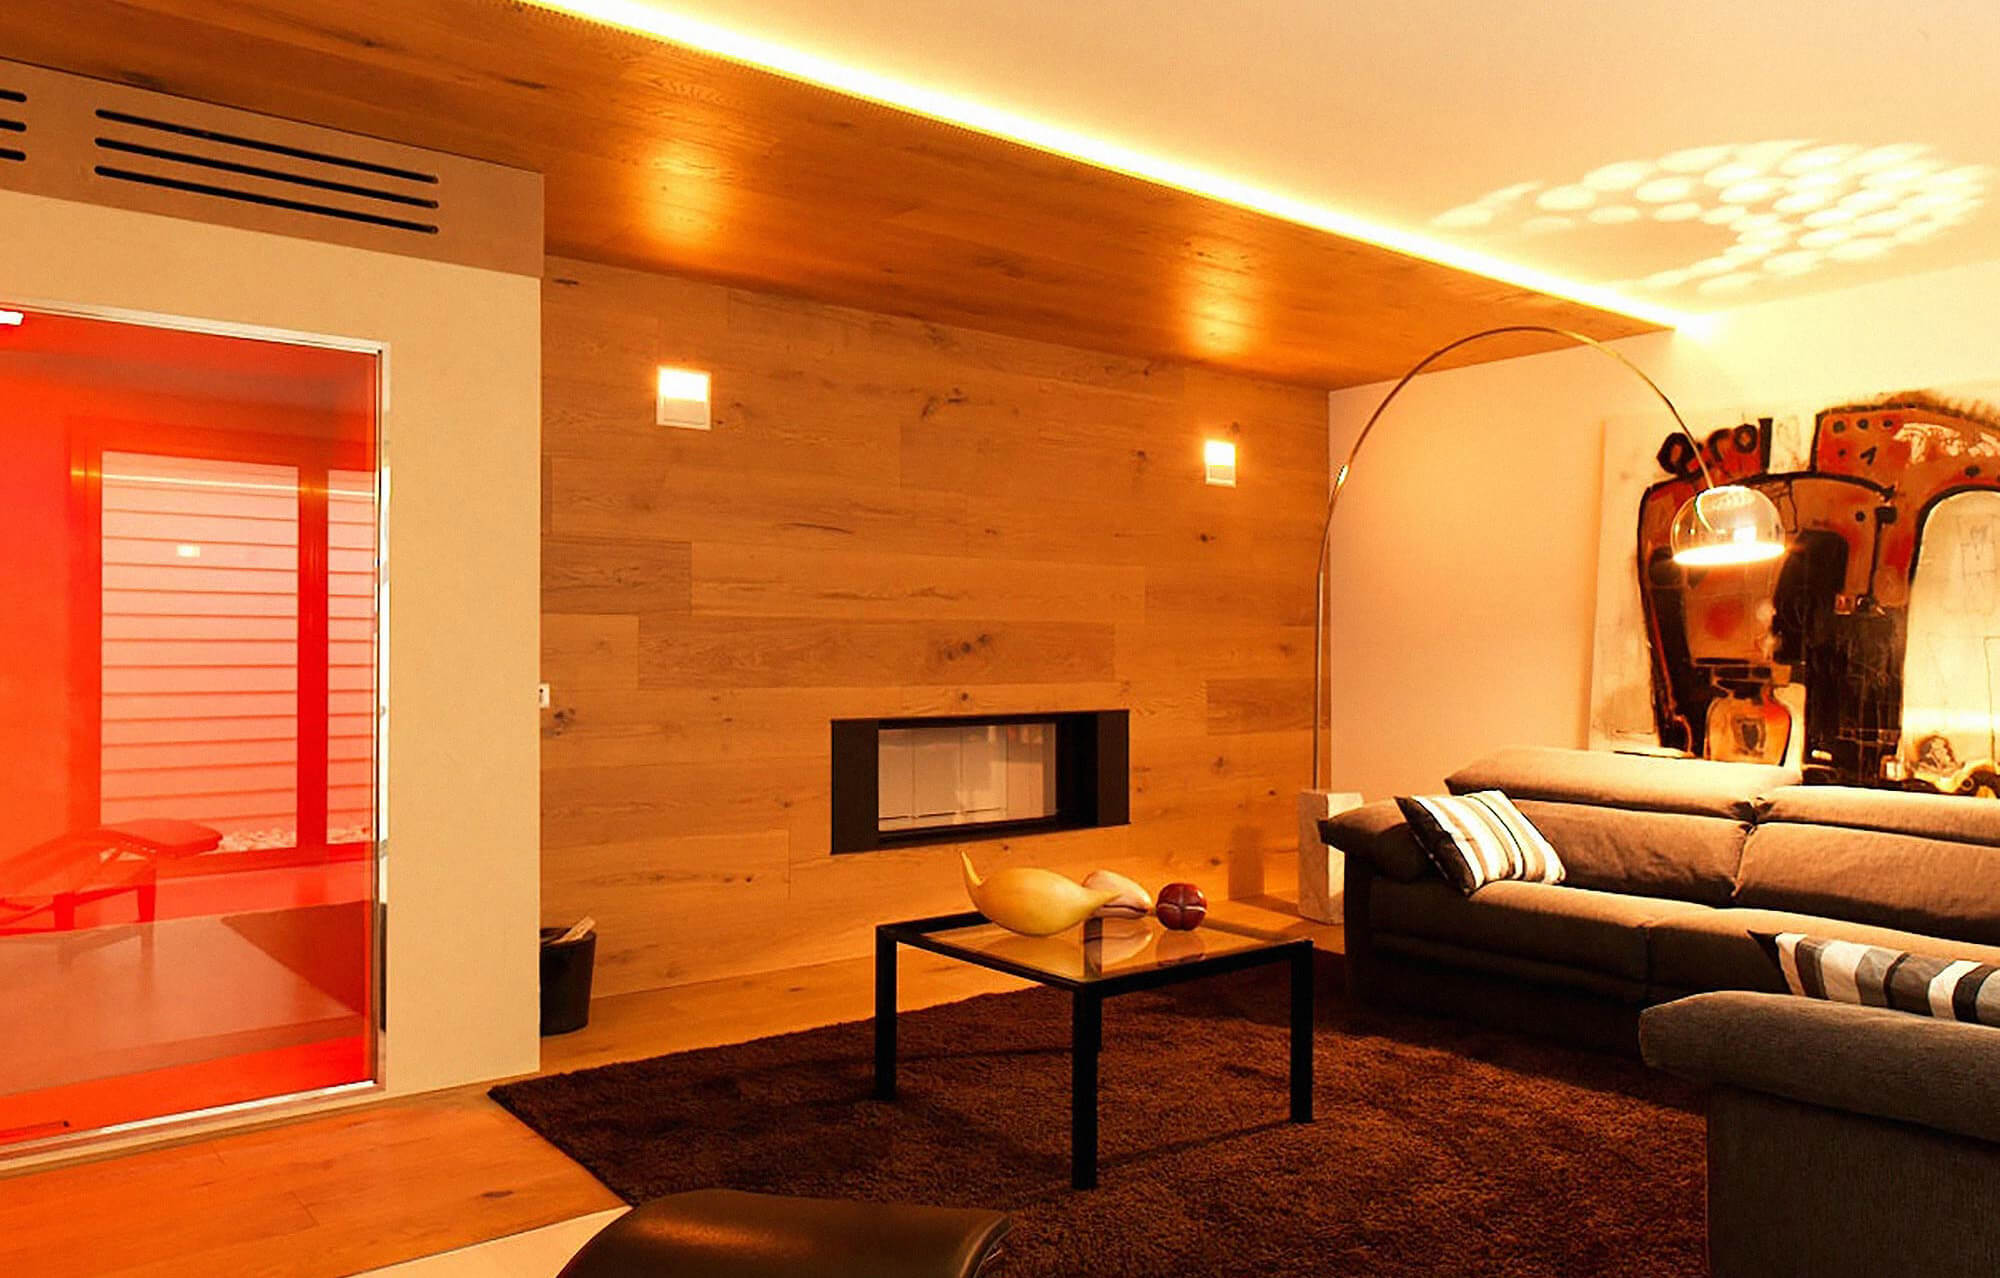 wood-fireplace-relax-area-51